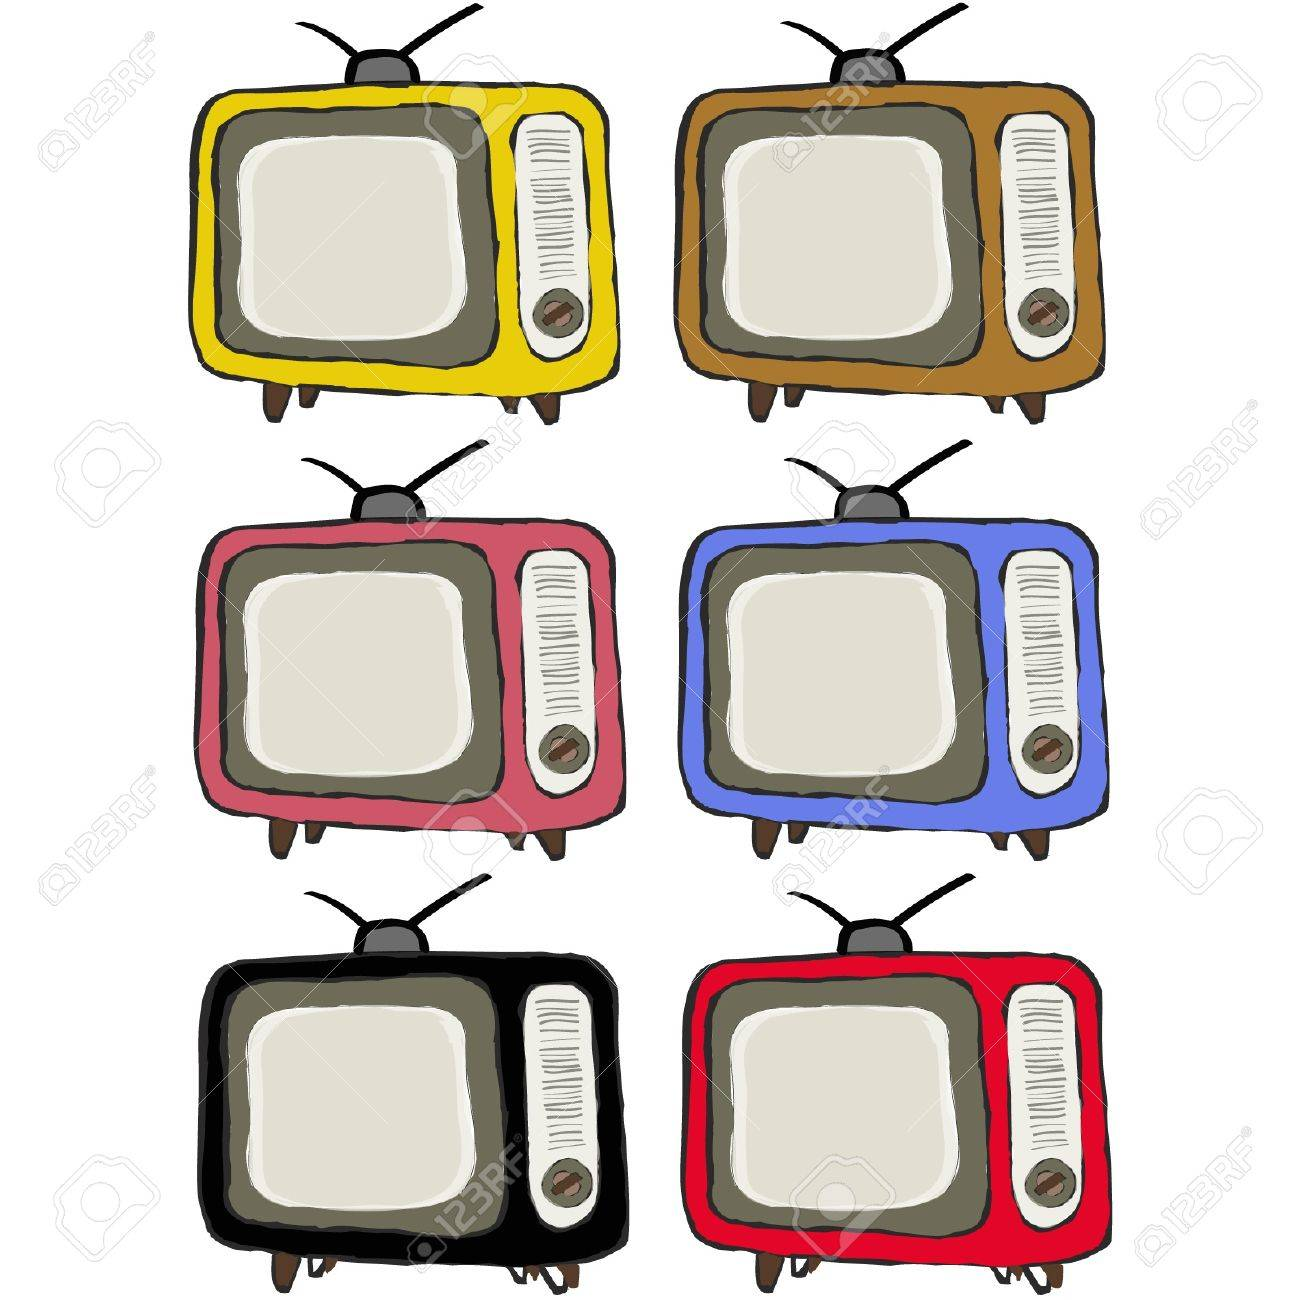 Retro colorful television vintage Stock Vector - 16122050